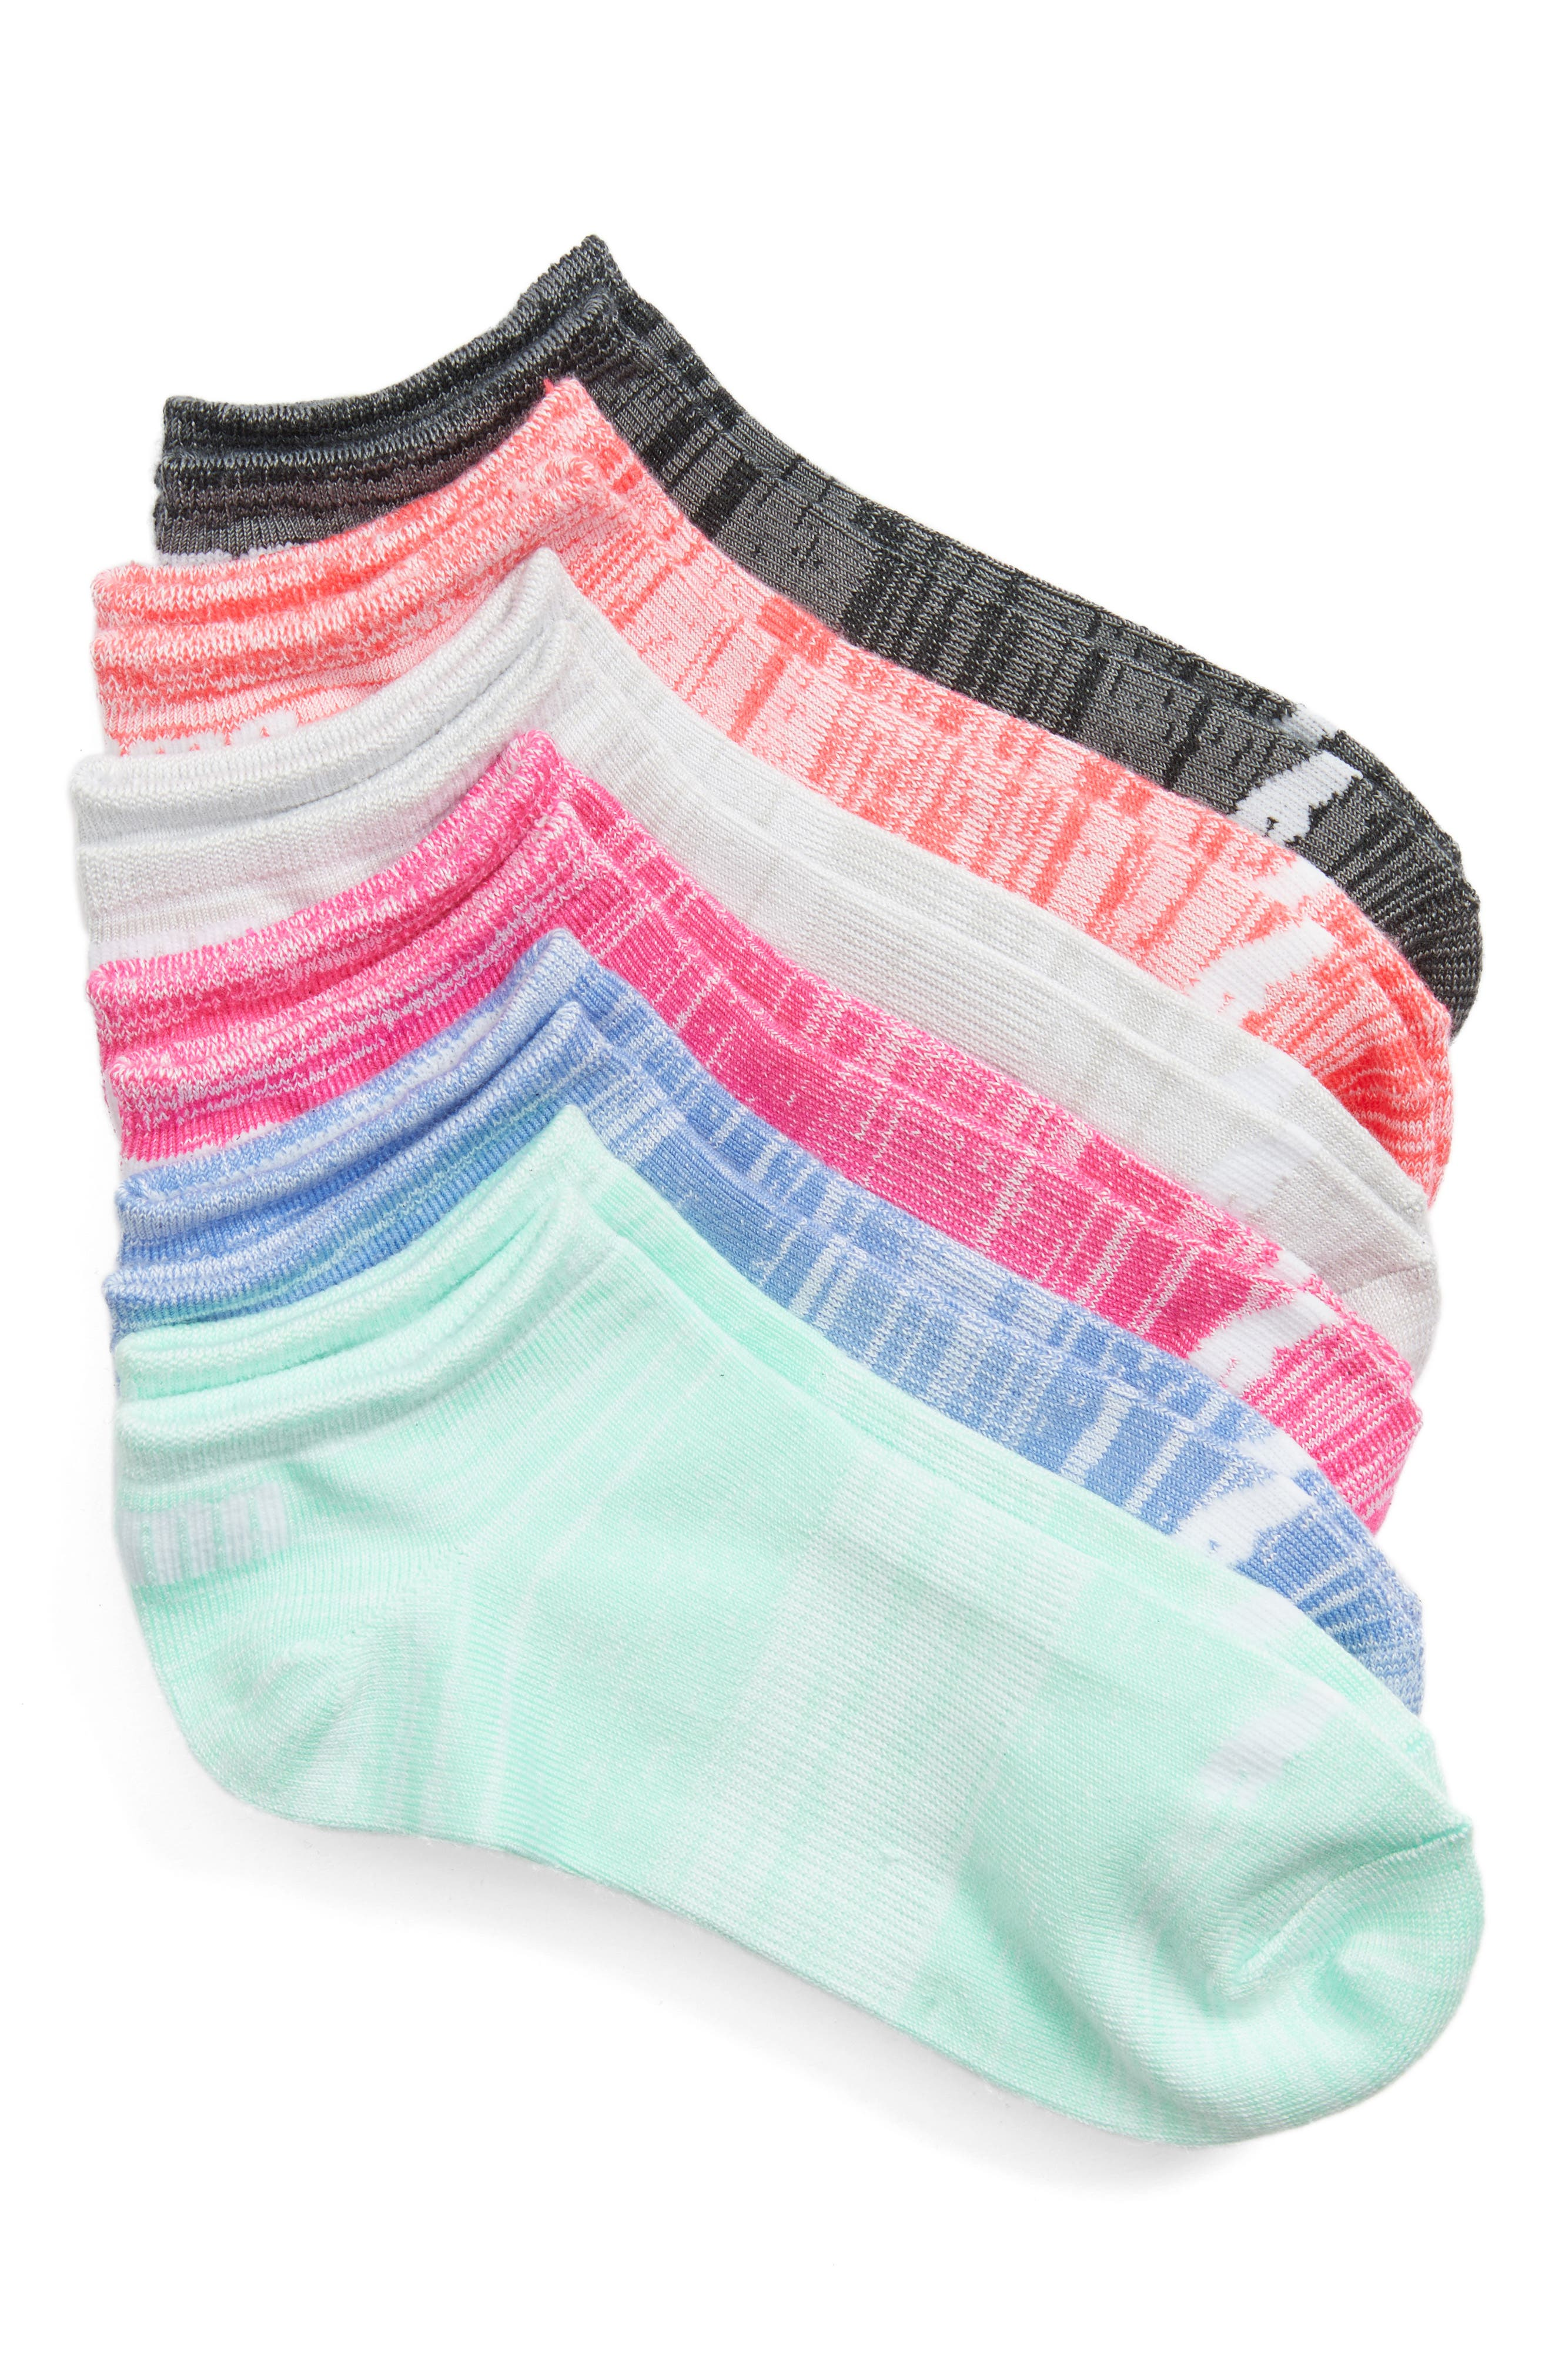 6-Pack No-Show Socks,                             Main thumbnail 1, color,                             650